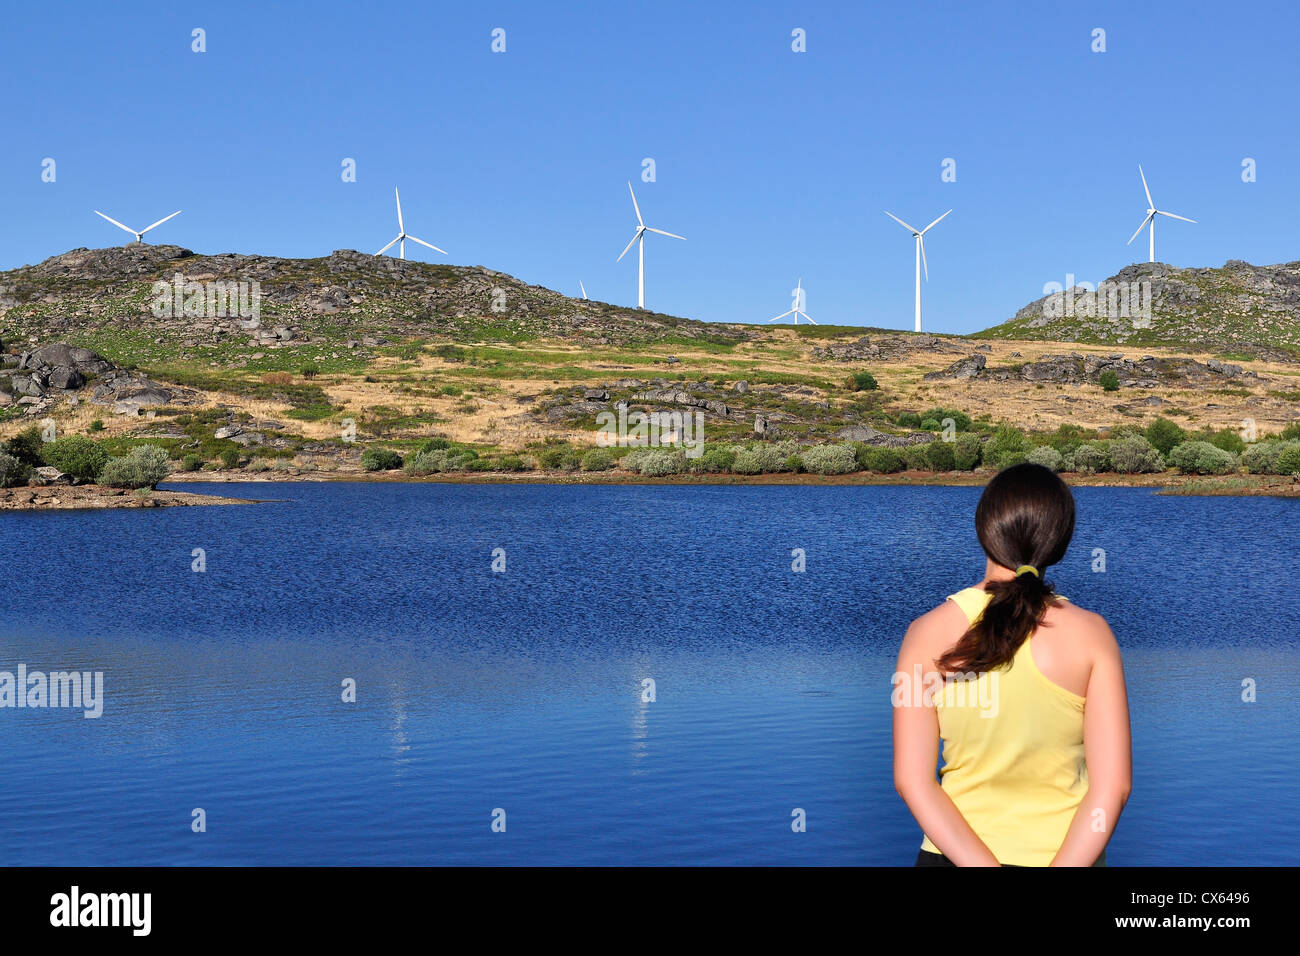 Woman looking at a wind mill across a lake. Focus is on the wind turbines and the woman is slightly out of focus. - Stock Image